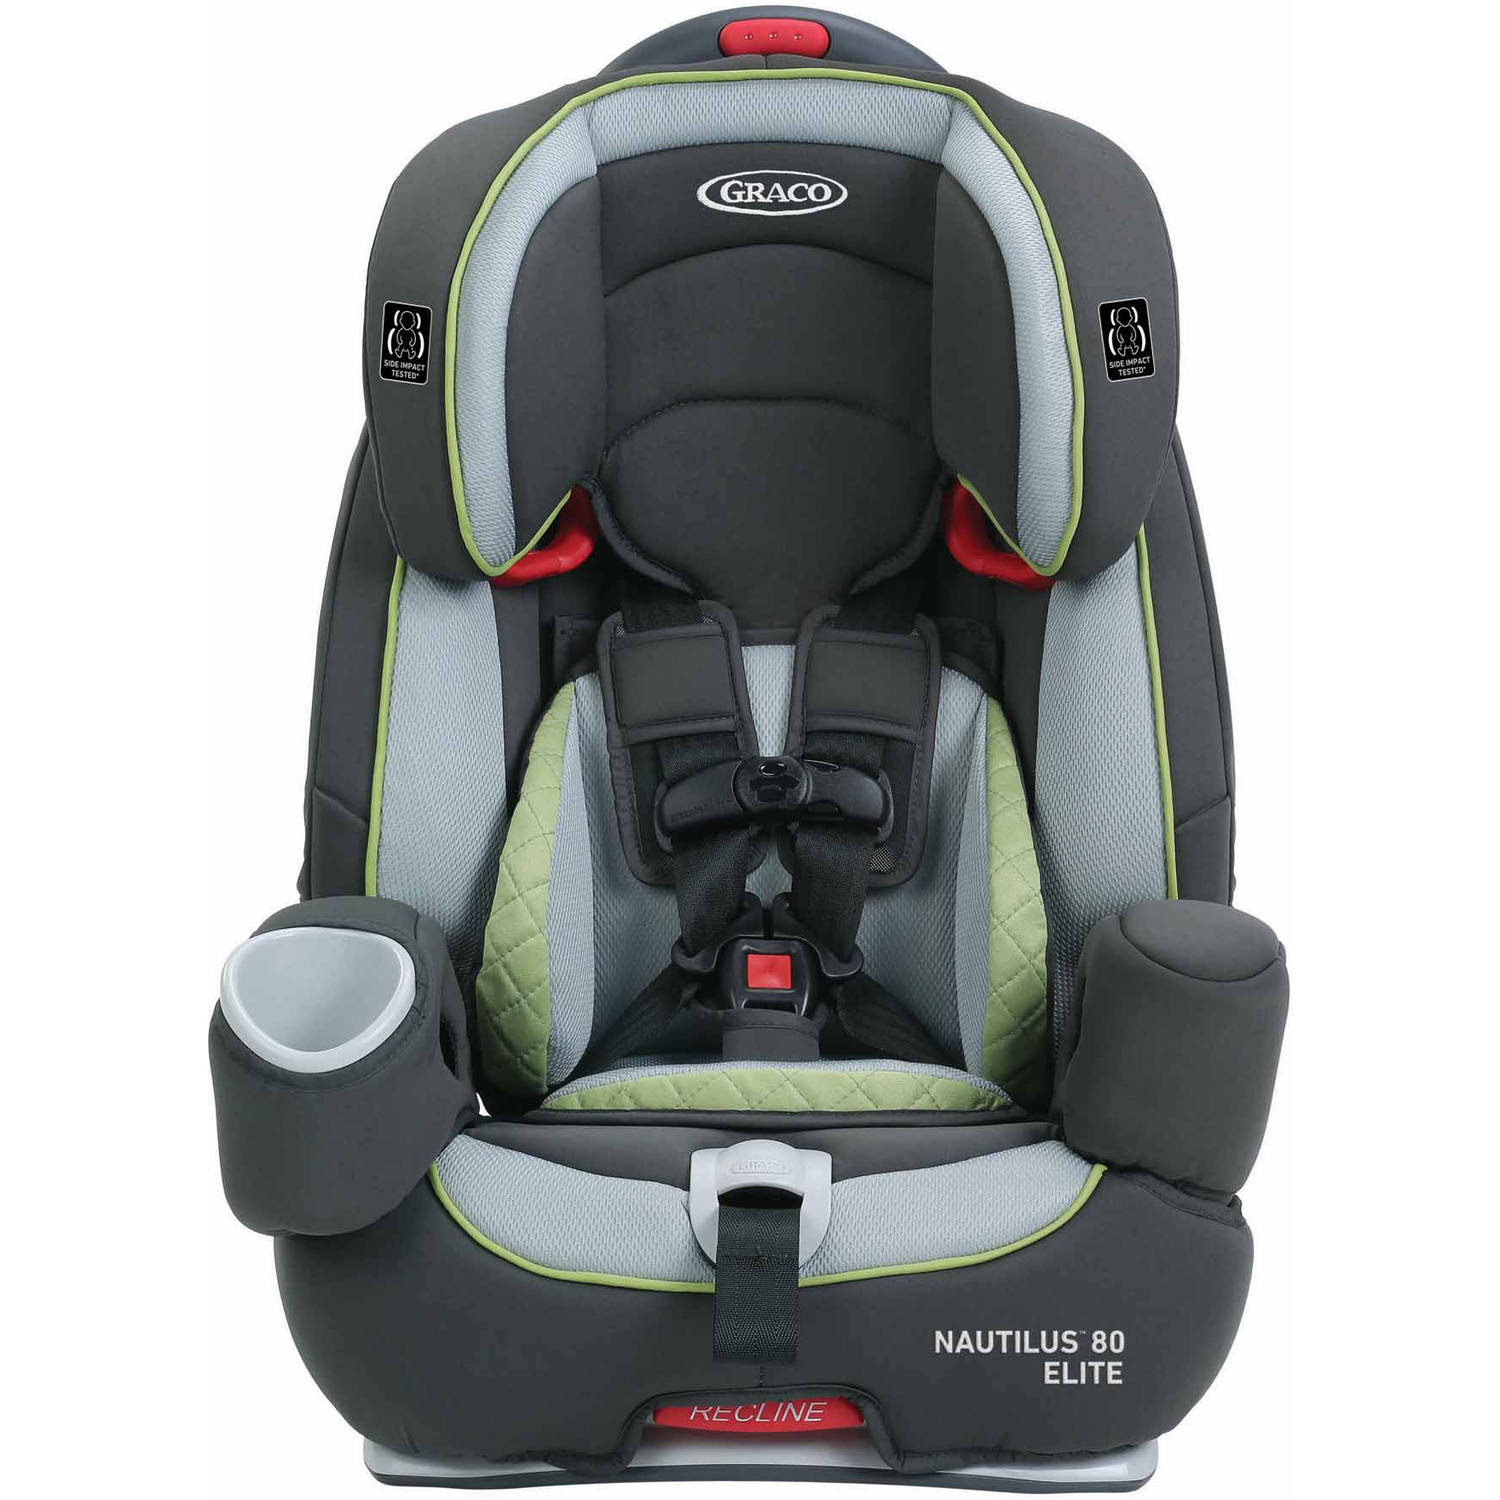 Graco Nautilus 80 Elite 3-in-1 Harness Booster Car Seat,  Choose Your Color